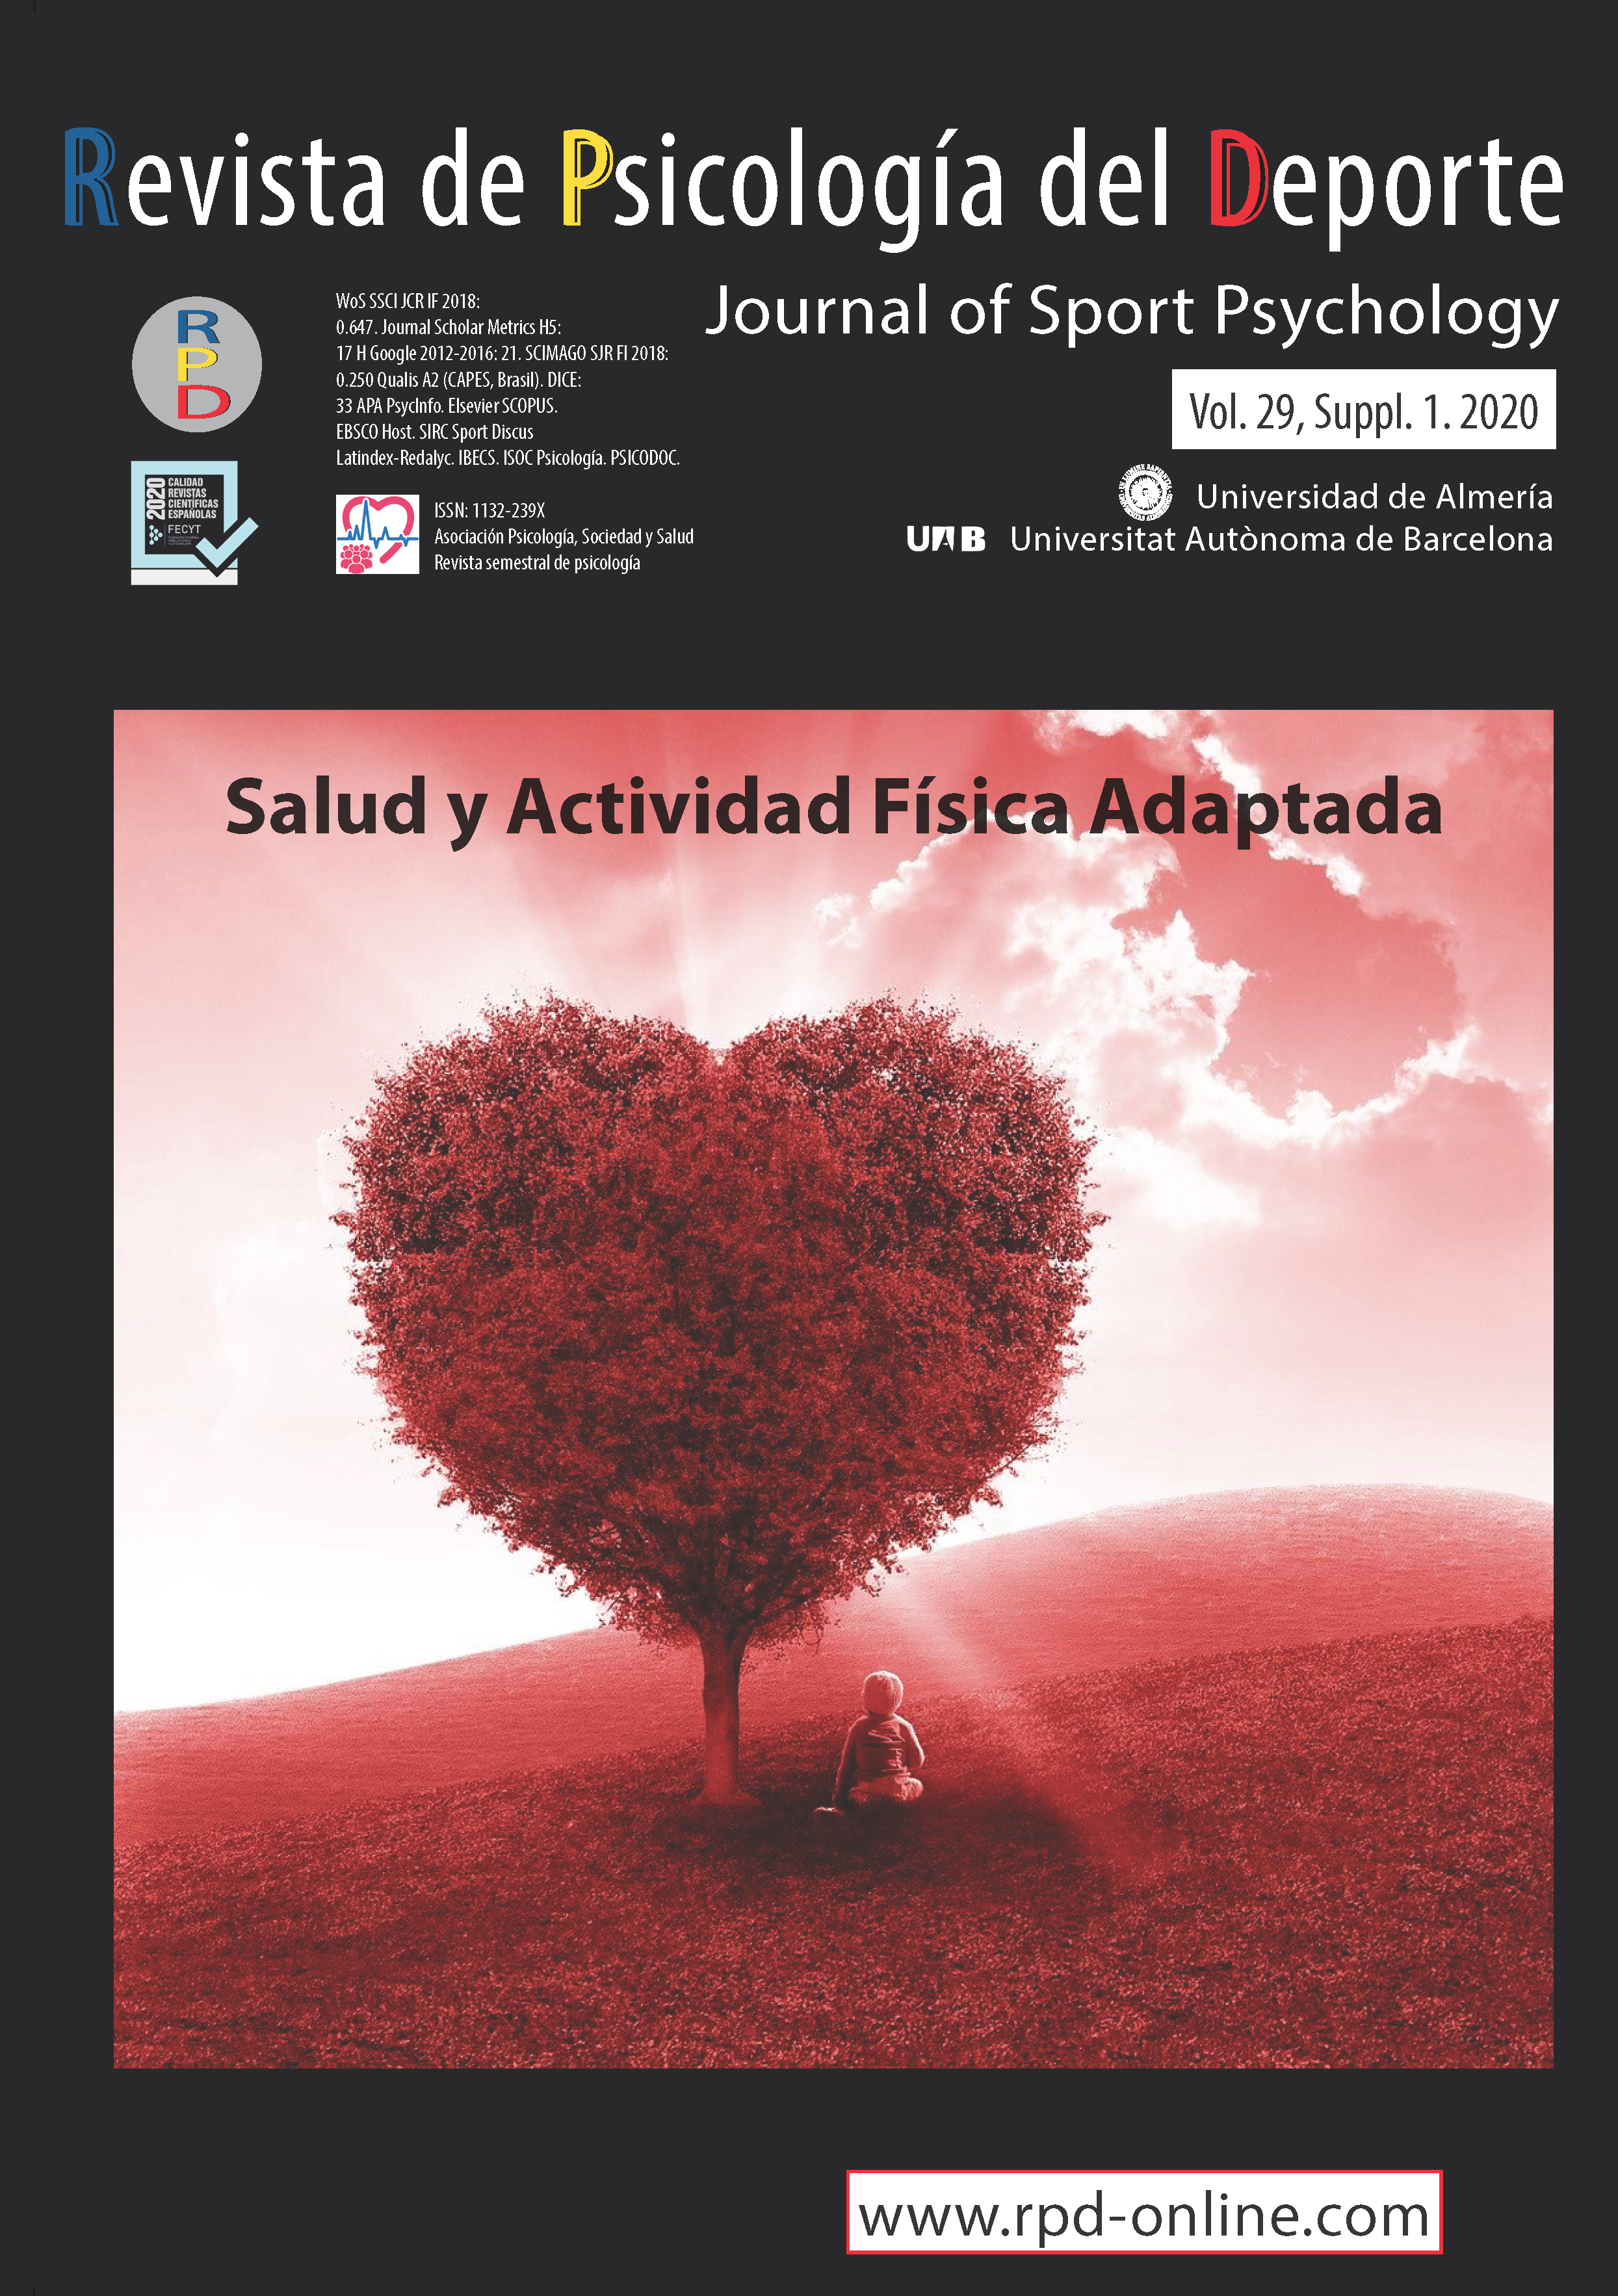 View Vol. 29 No. 3 (2020): Supplement 1: Adapted Physical Activity and Health